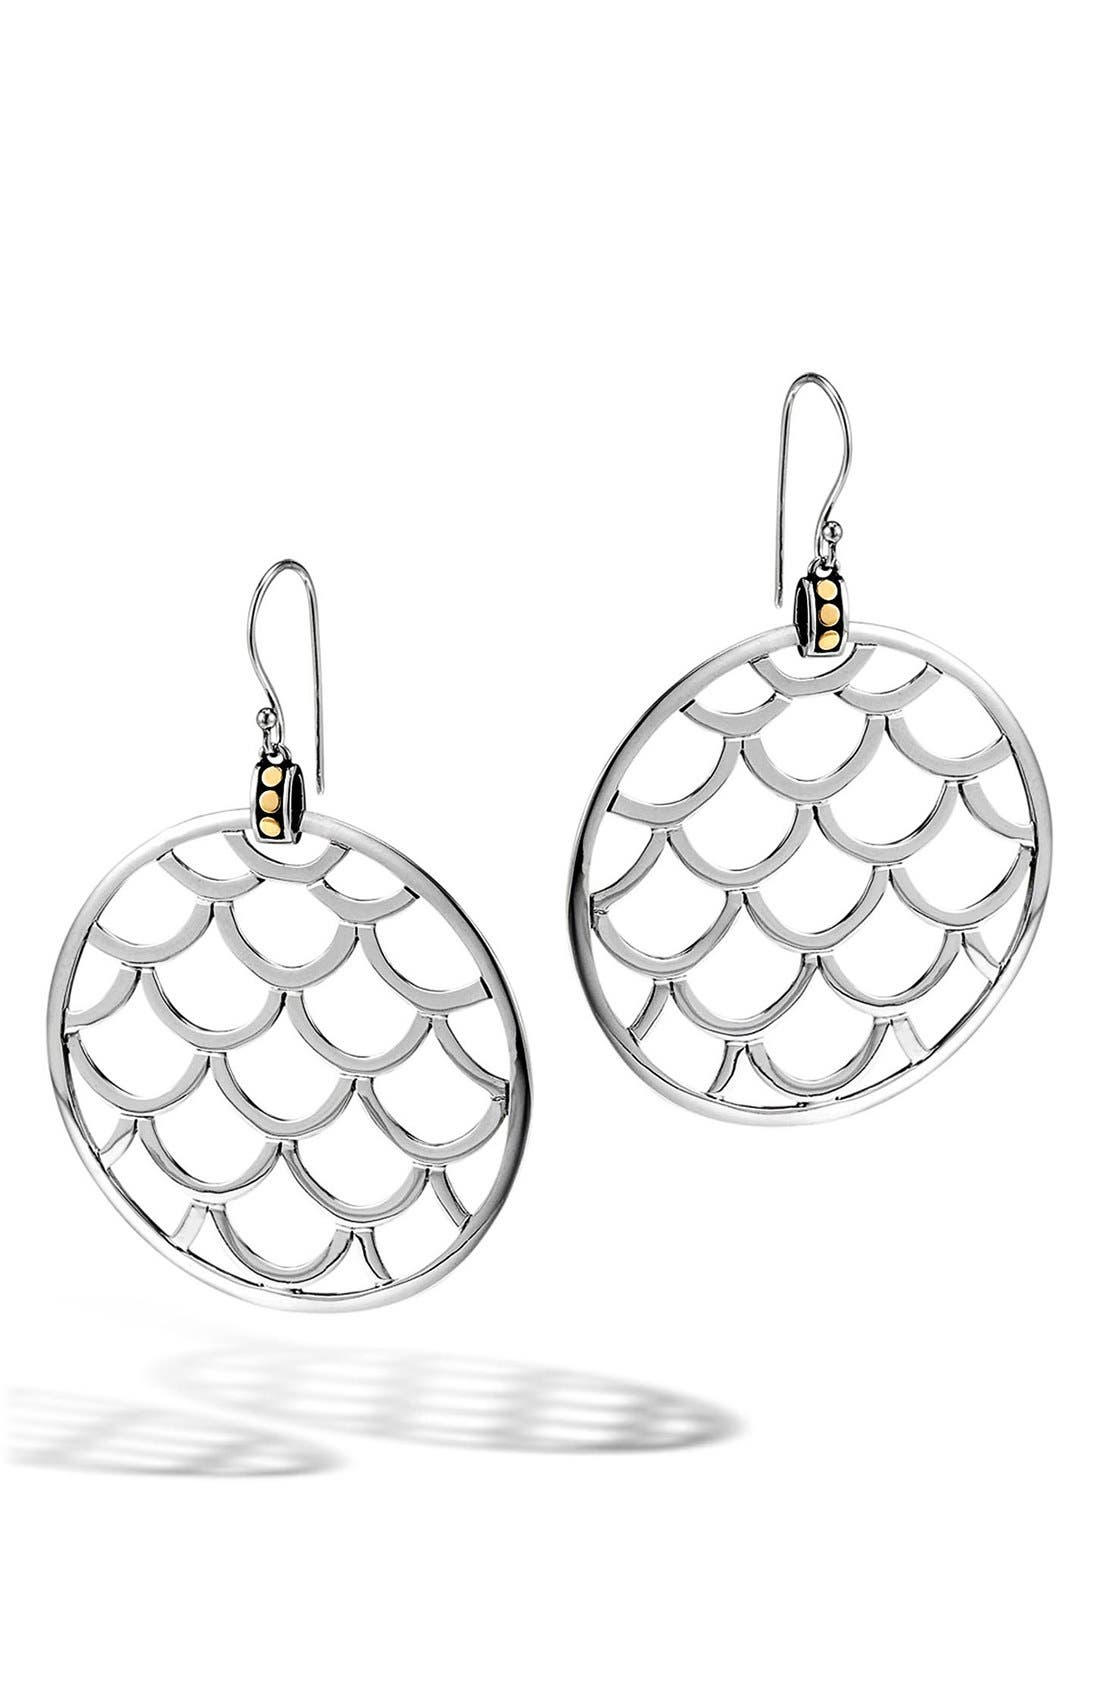 Main Image - John Hardy 'Legends' Large Round Drop Earrings